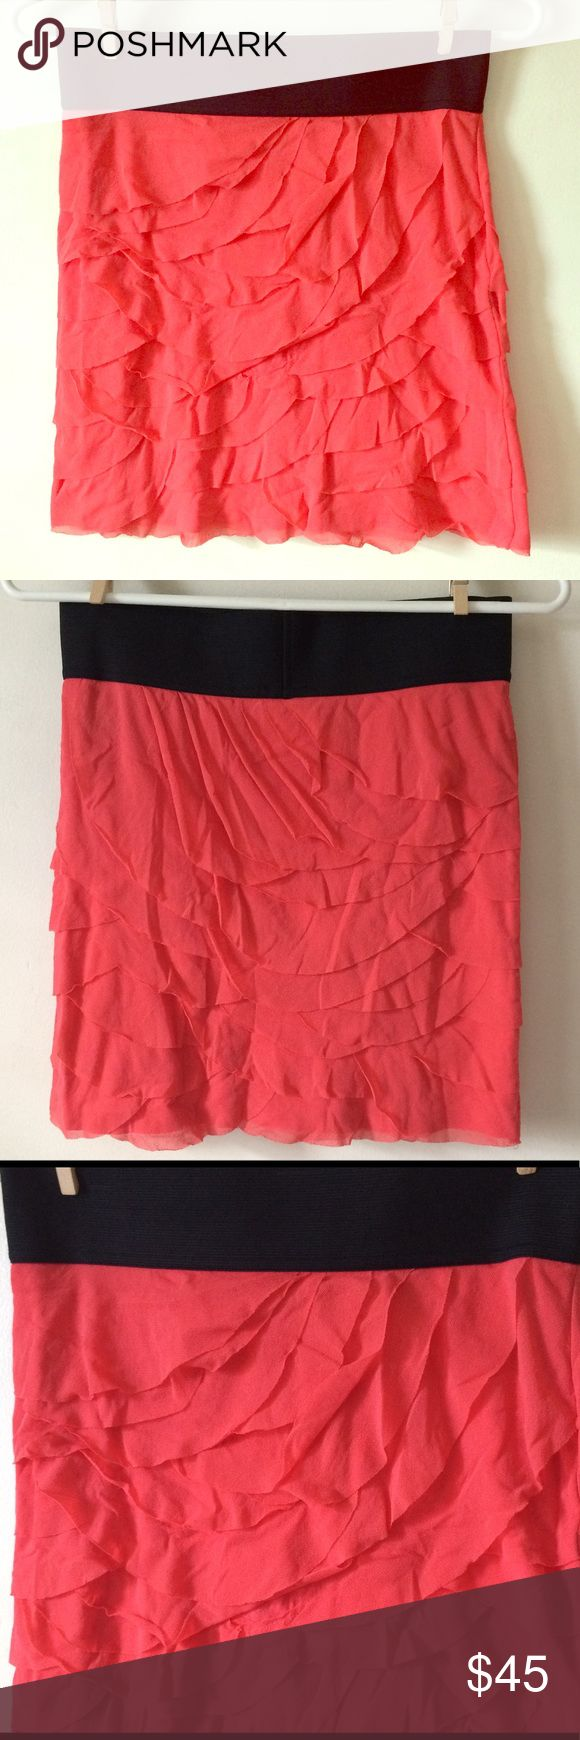 Express ruffled coral mini skirt elastic waist szS Express ruffled coral mini skirt elastic waist szS Excellent condition with no noted flaws like stains rips tears Measurements available on request  M1 Express Skirts Mini